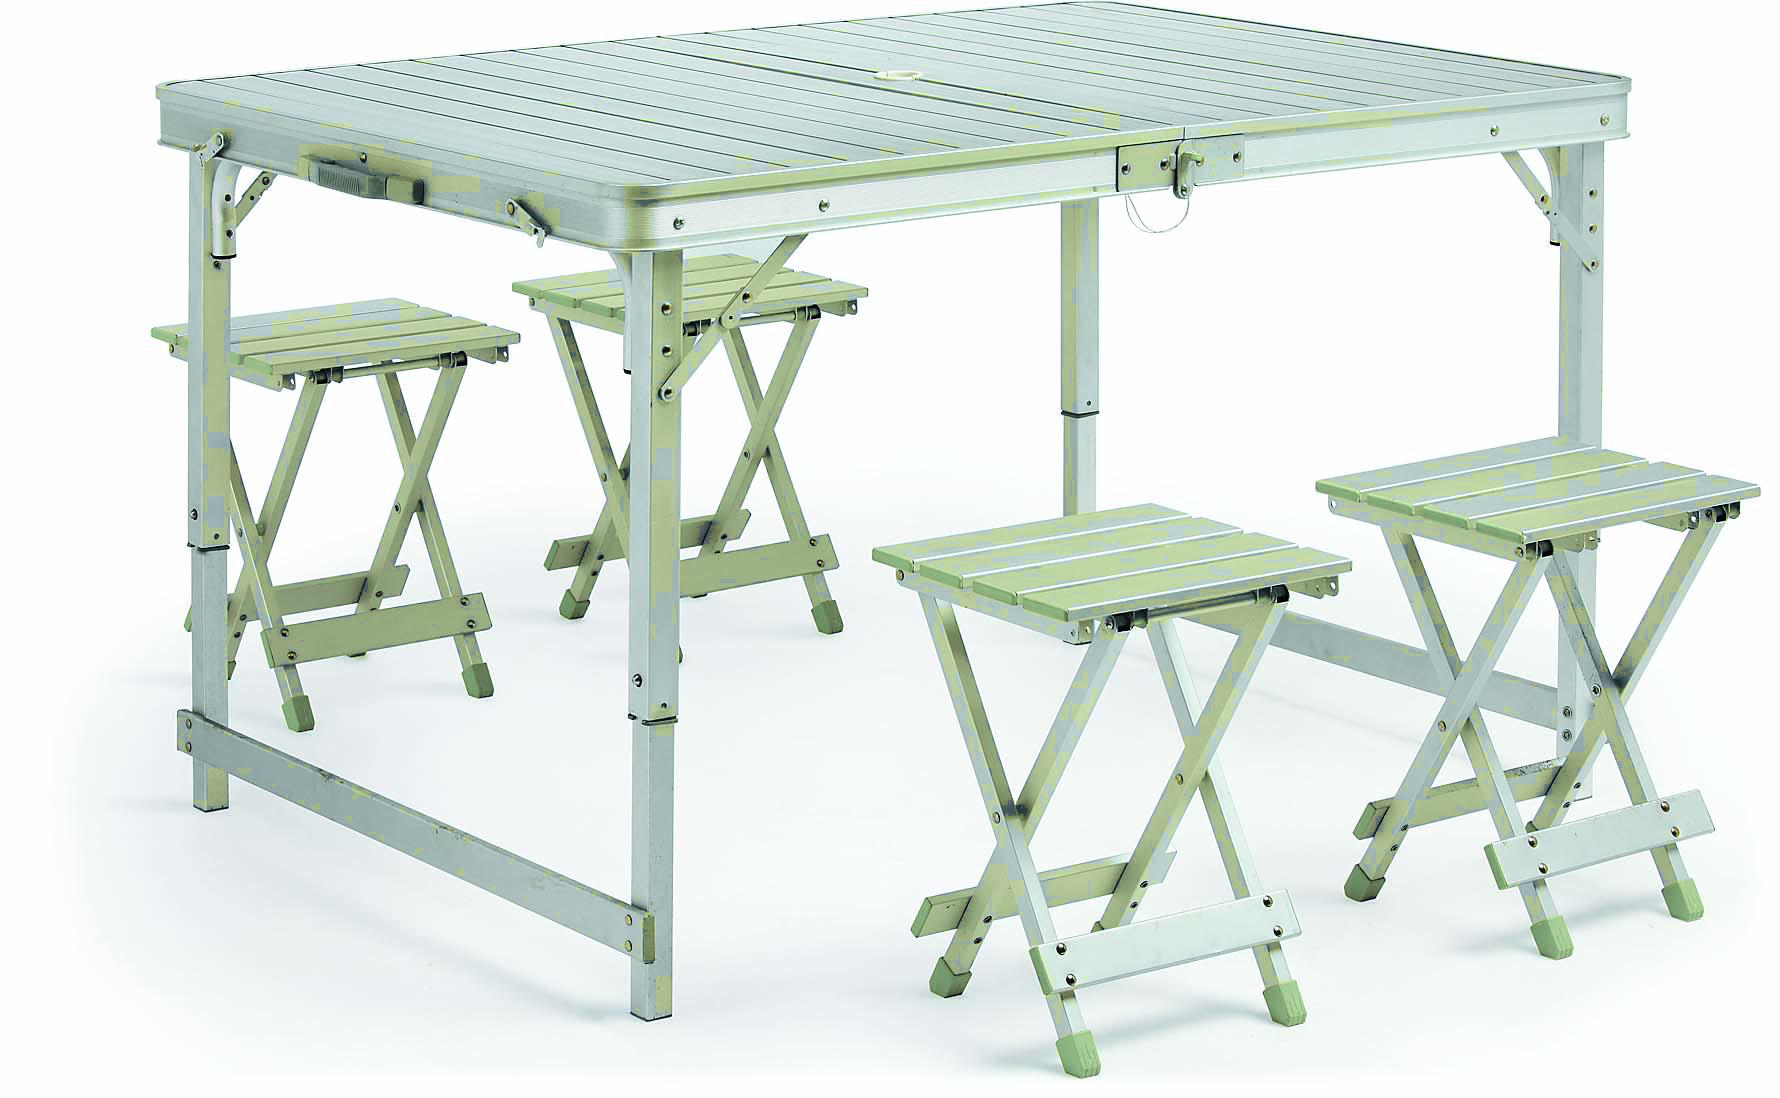 Hot Selling Outdoor Furniture Economic Full Aluminum Picnic Table